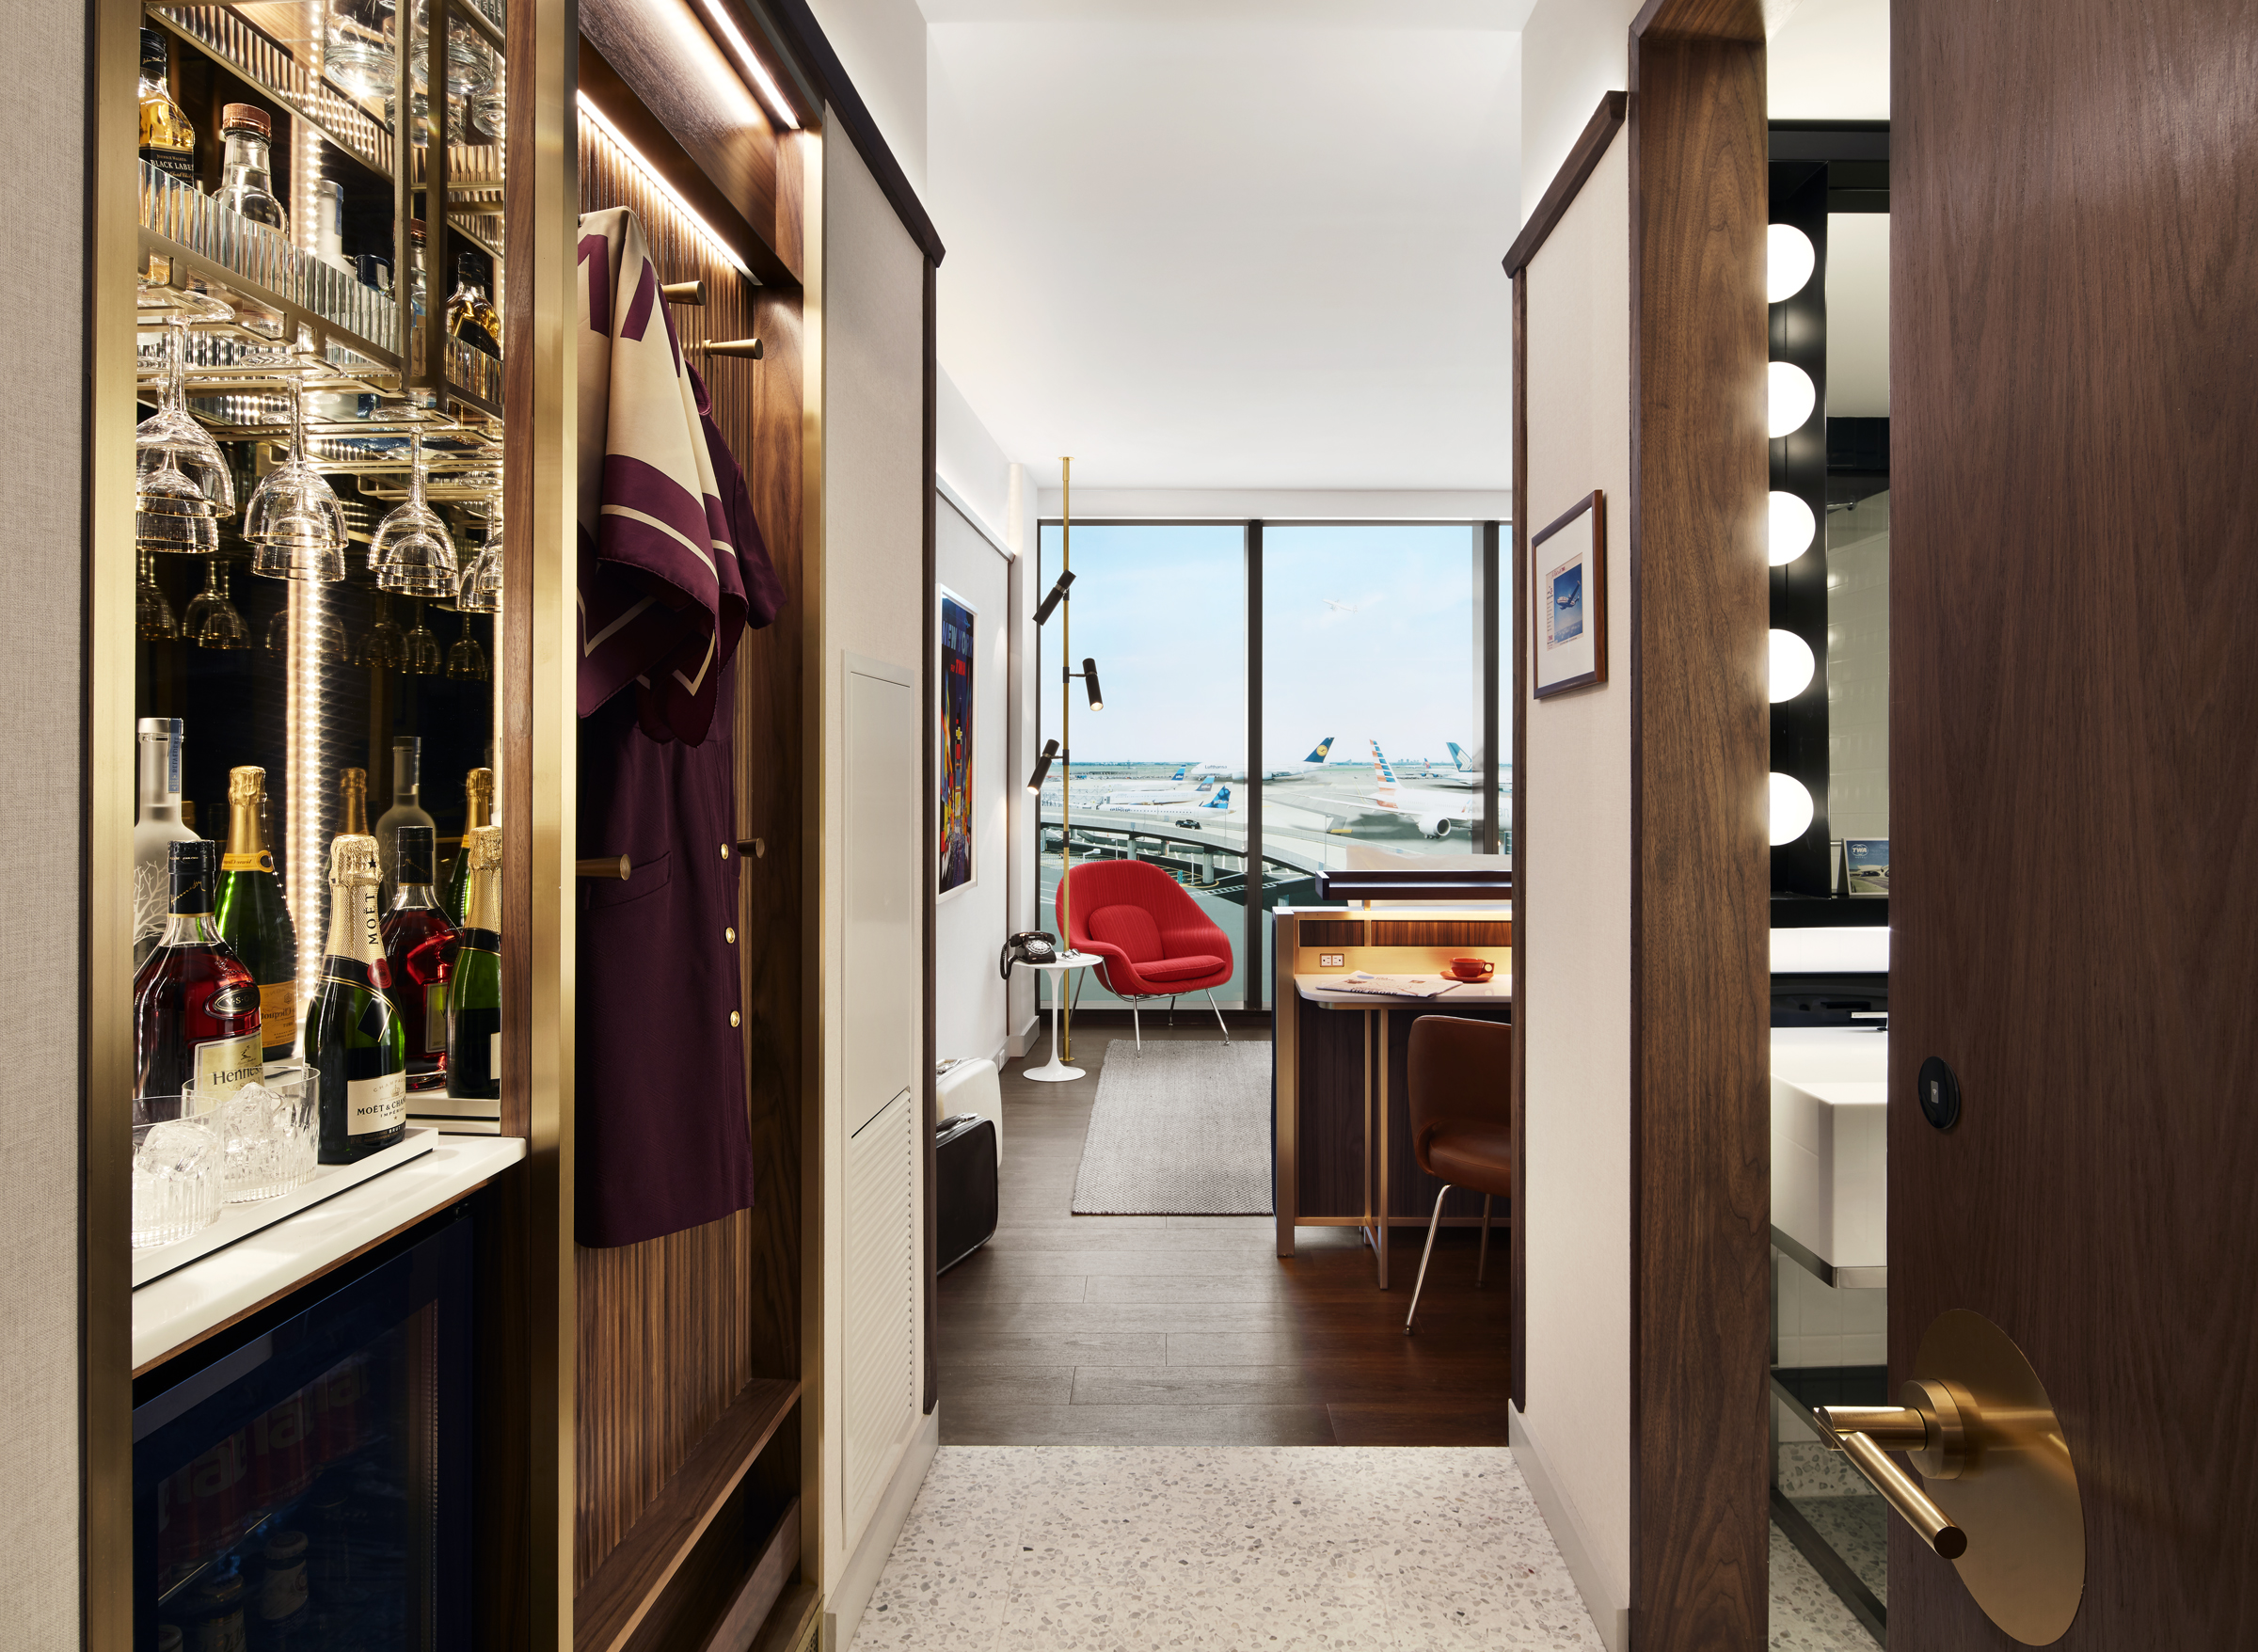 Each room has a custom-build bar made of walnut, glass, mirrors, brushed brass and crystallized glass.